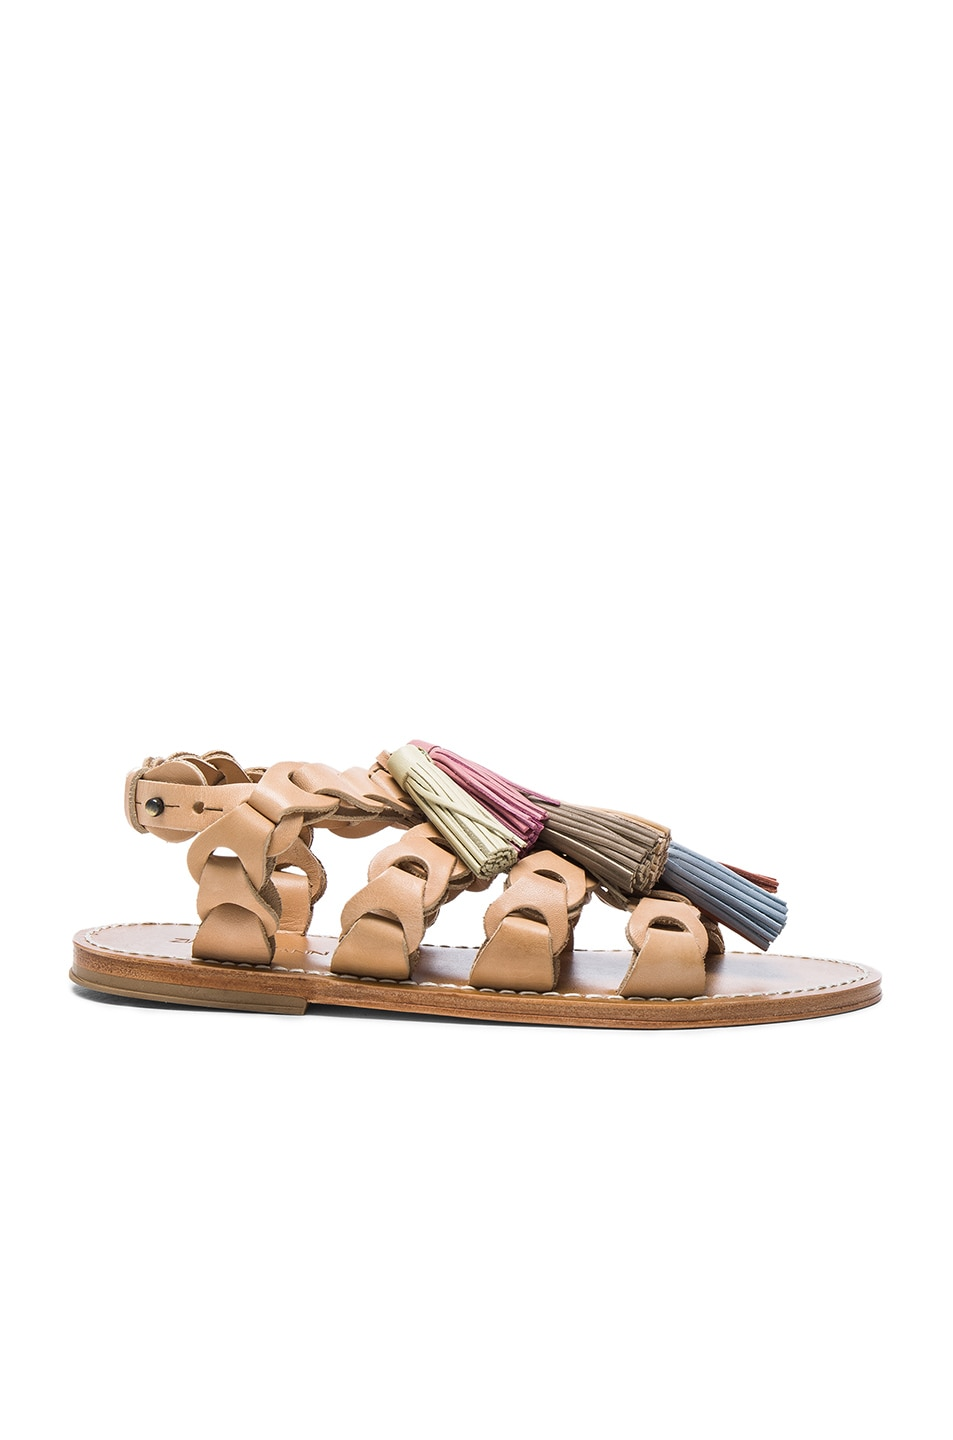 Image 1 of Zimmermann Leather Link Tassel Sandals in Natural Tan Multi